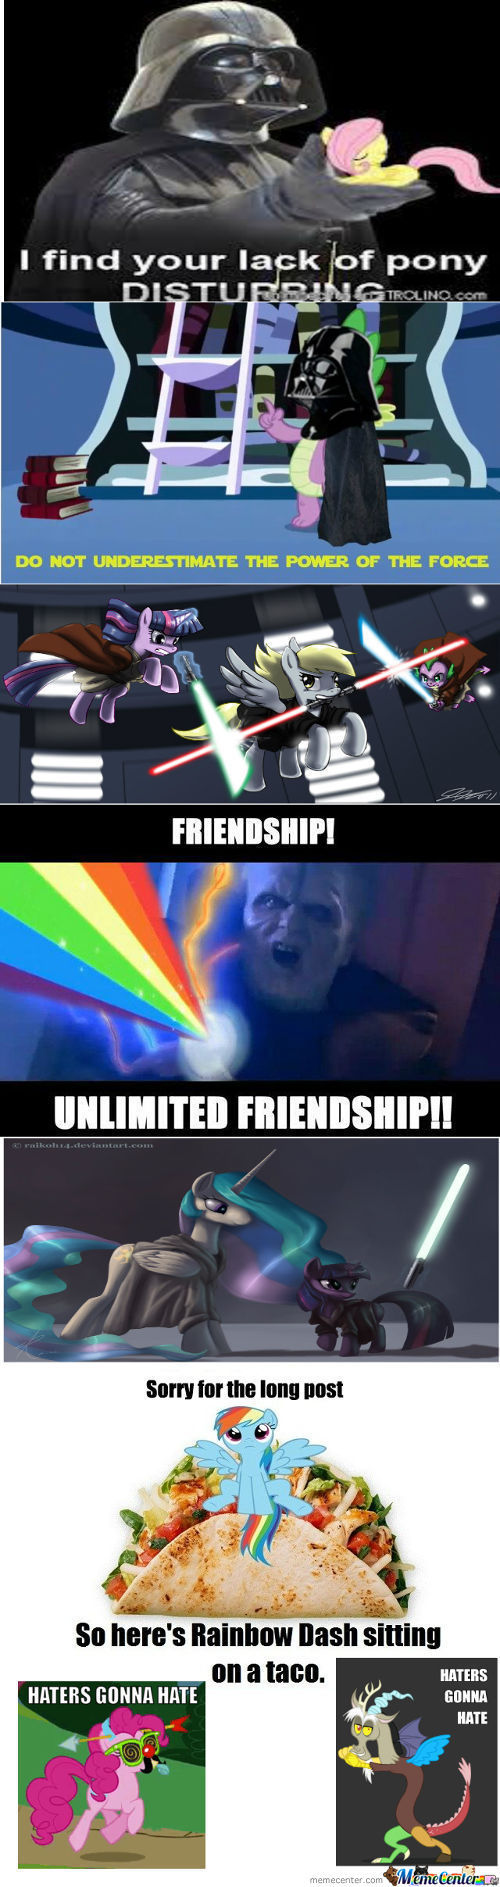 Star Wars + Ponies = Awesome